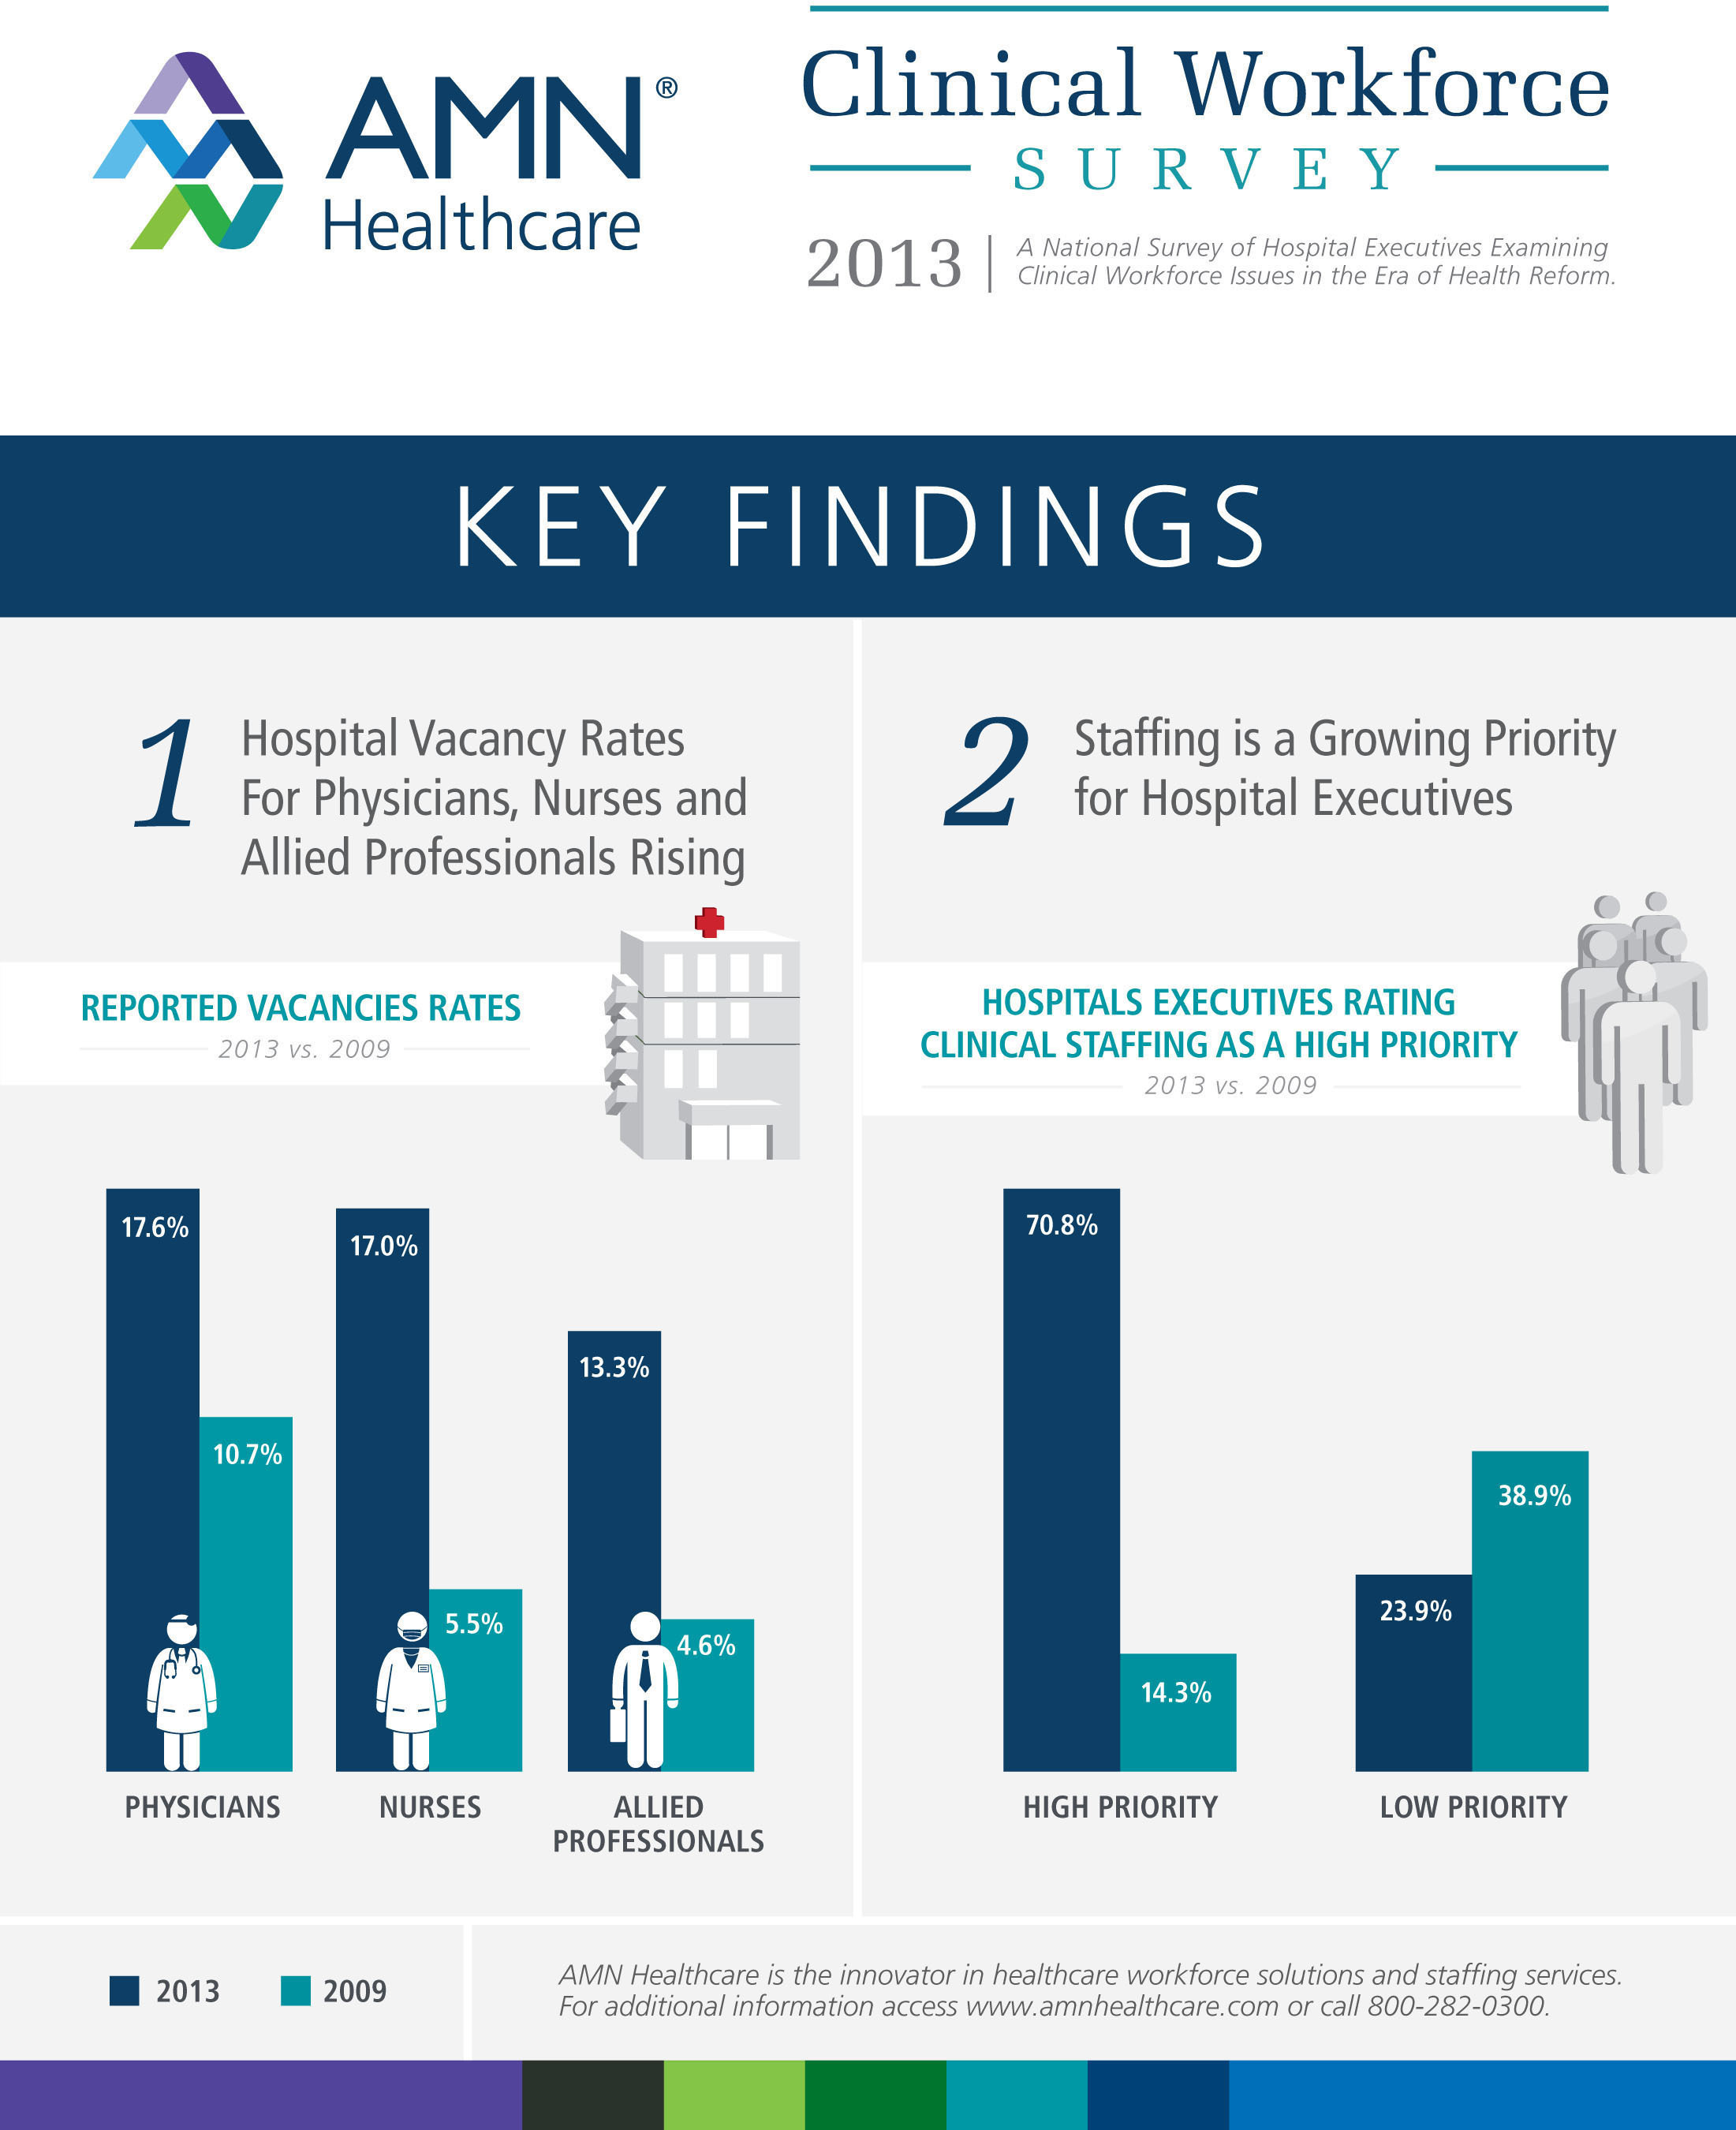 2013 Clinical Workforce Survey Key Findings. (PRNewsFoto/AMN Healthcare Services, Inc.)